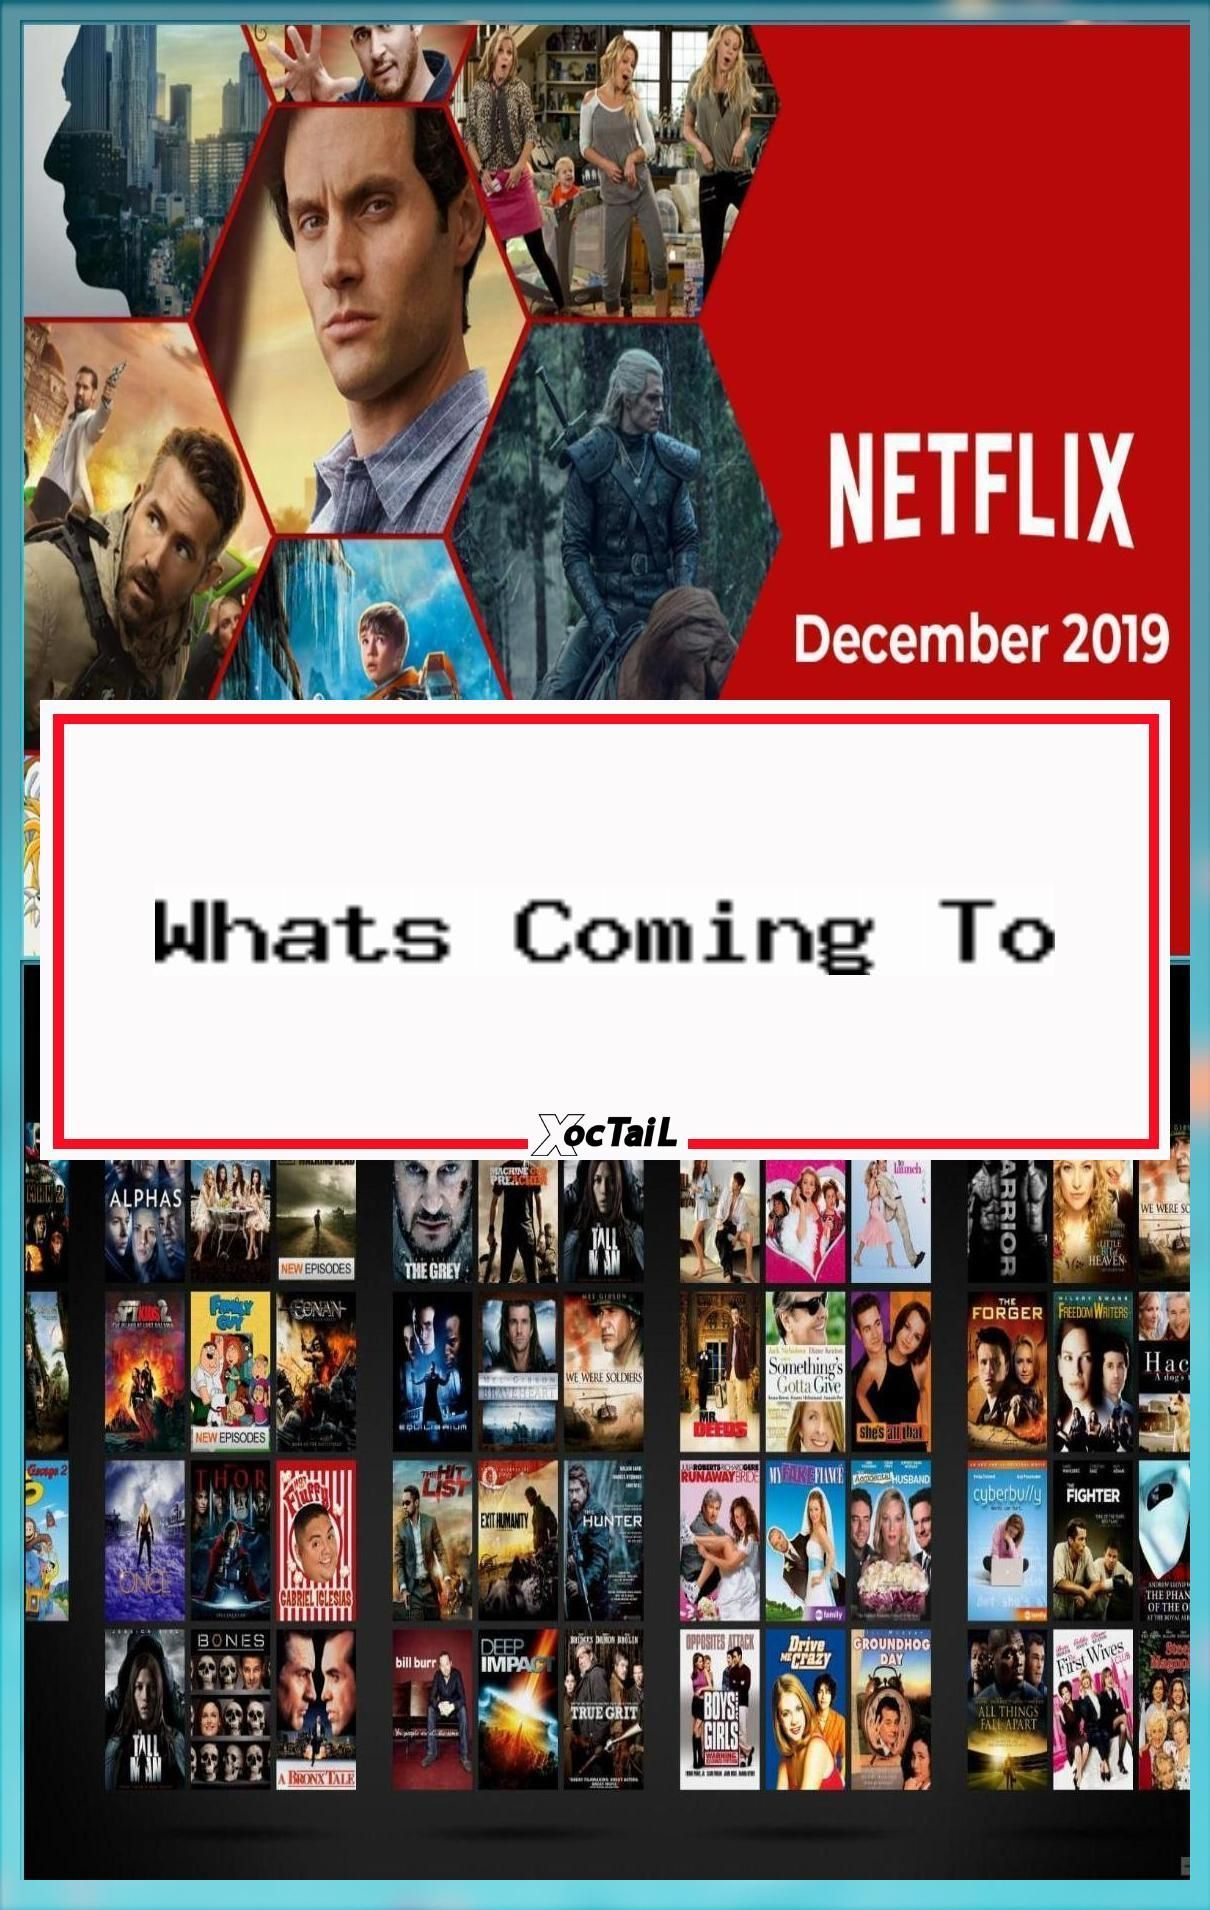 Whats Coming to Netflix in December 2019 Whats on